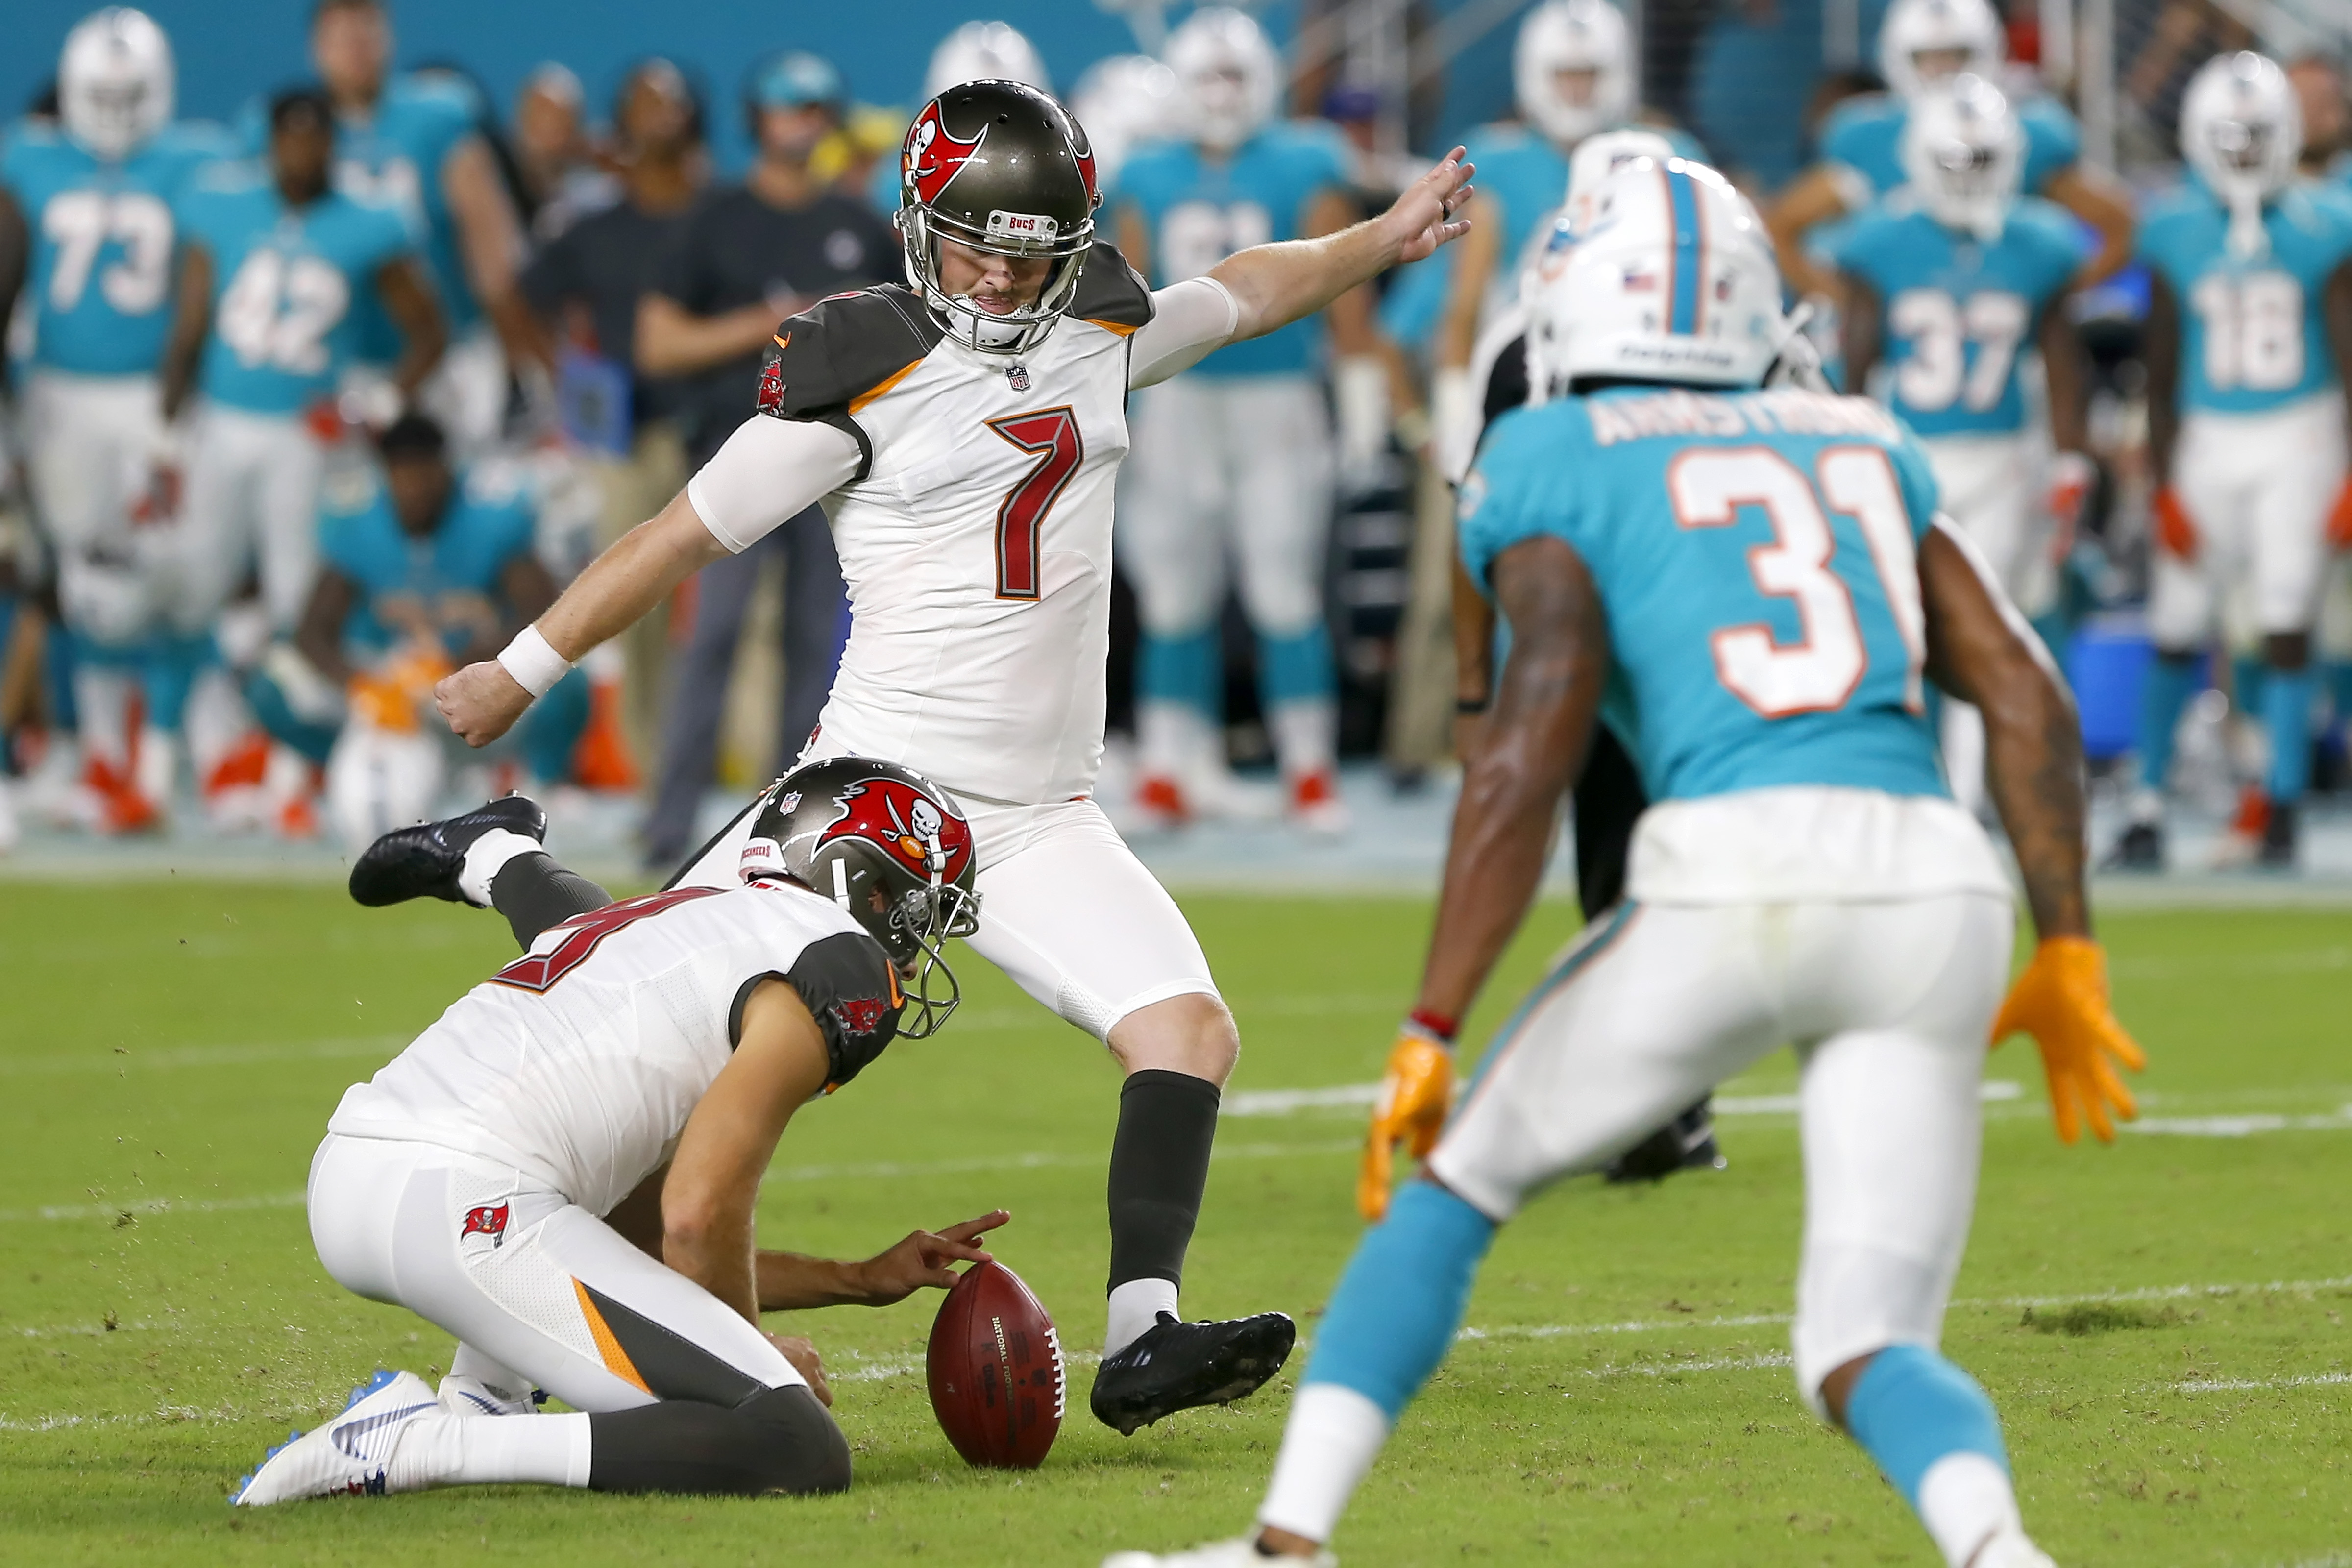 NFL: AUG 09 Preseason - Buccaneers at Dolphins